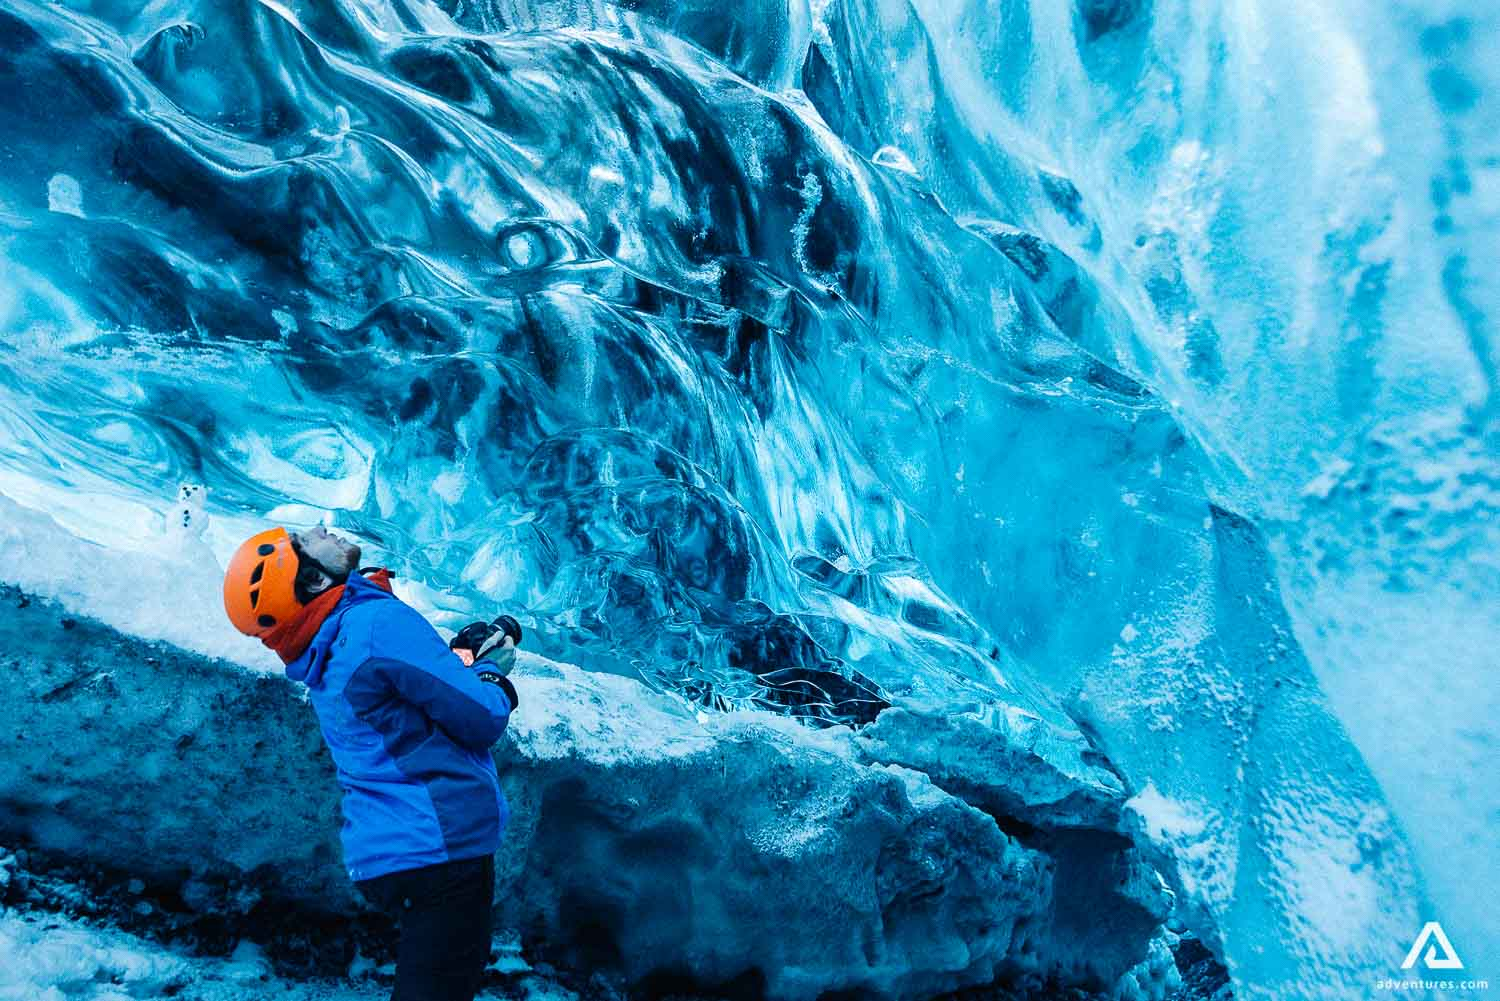 Crystal Ice Cave in Skaftafell